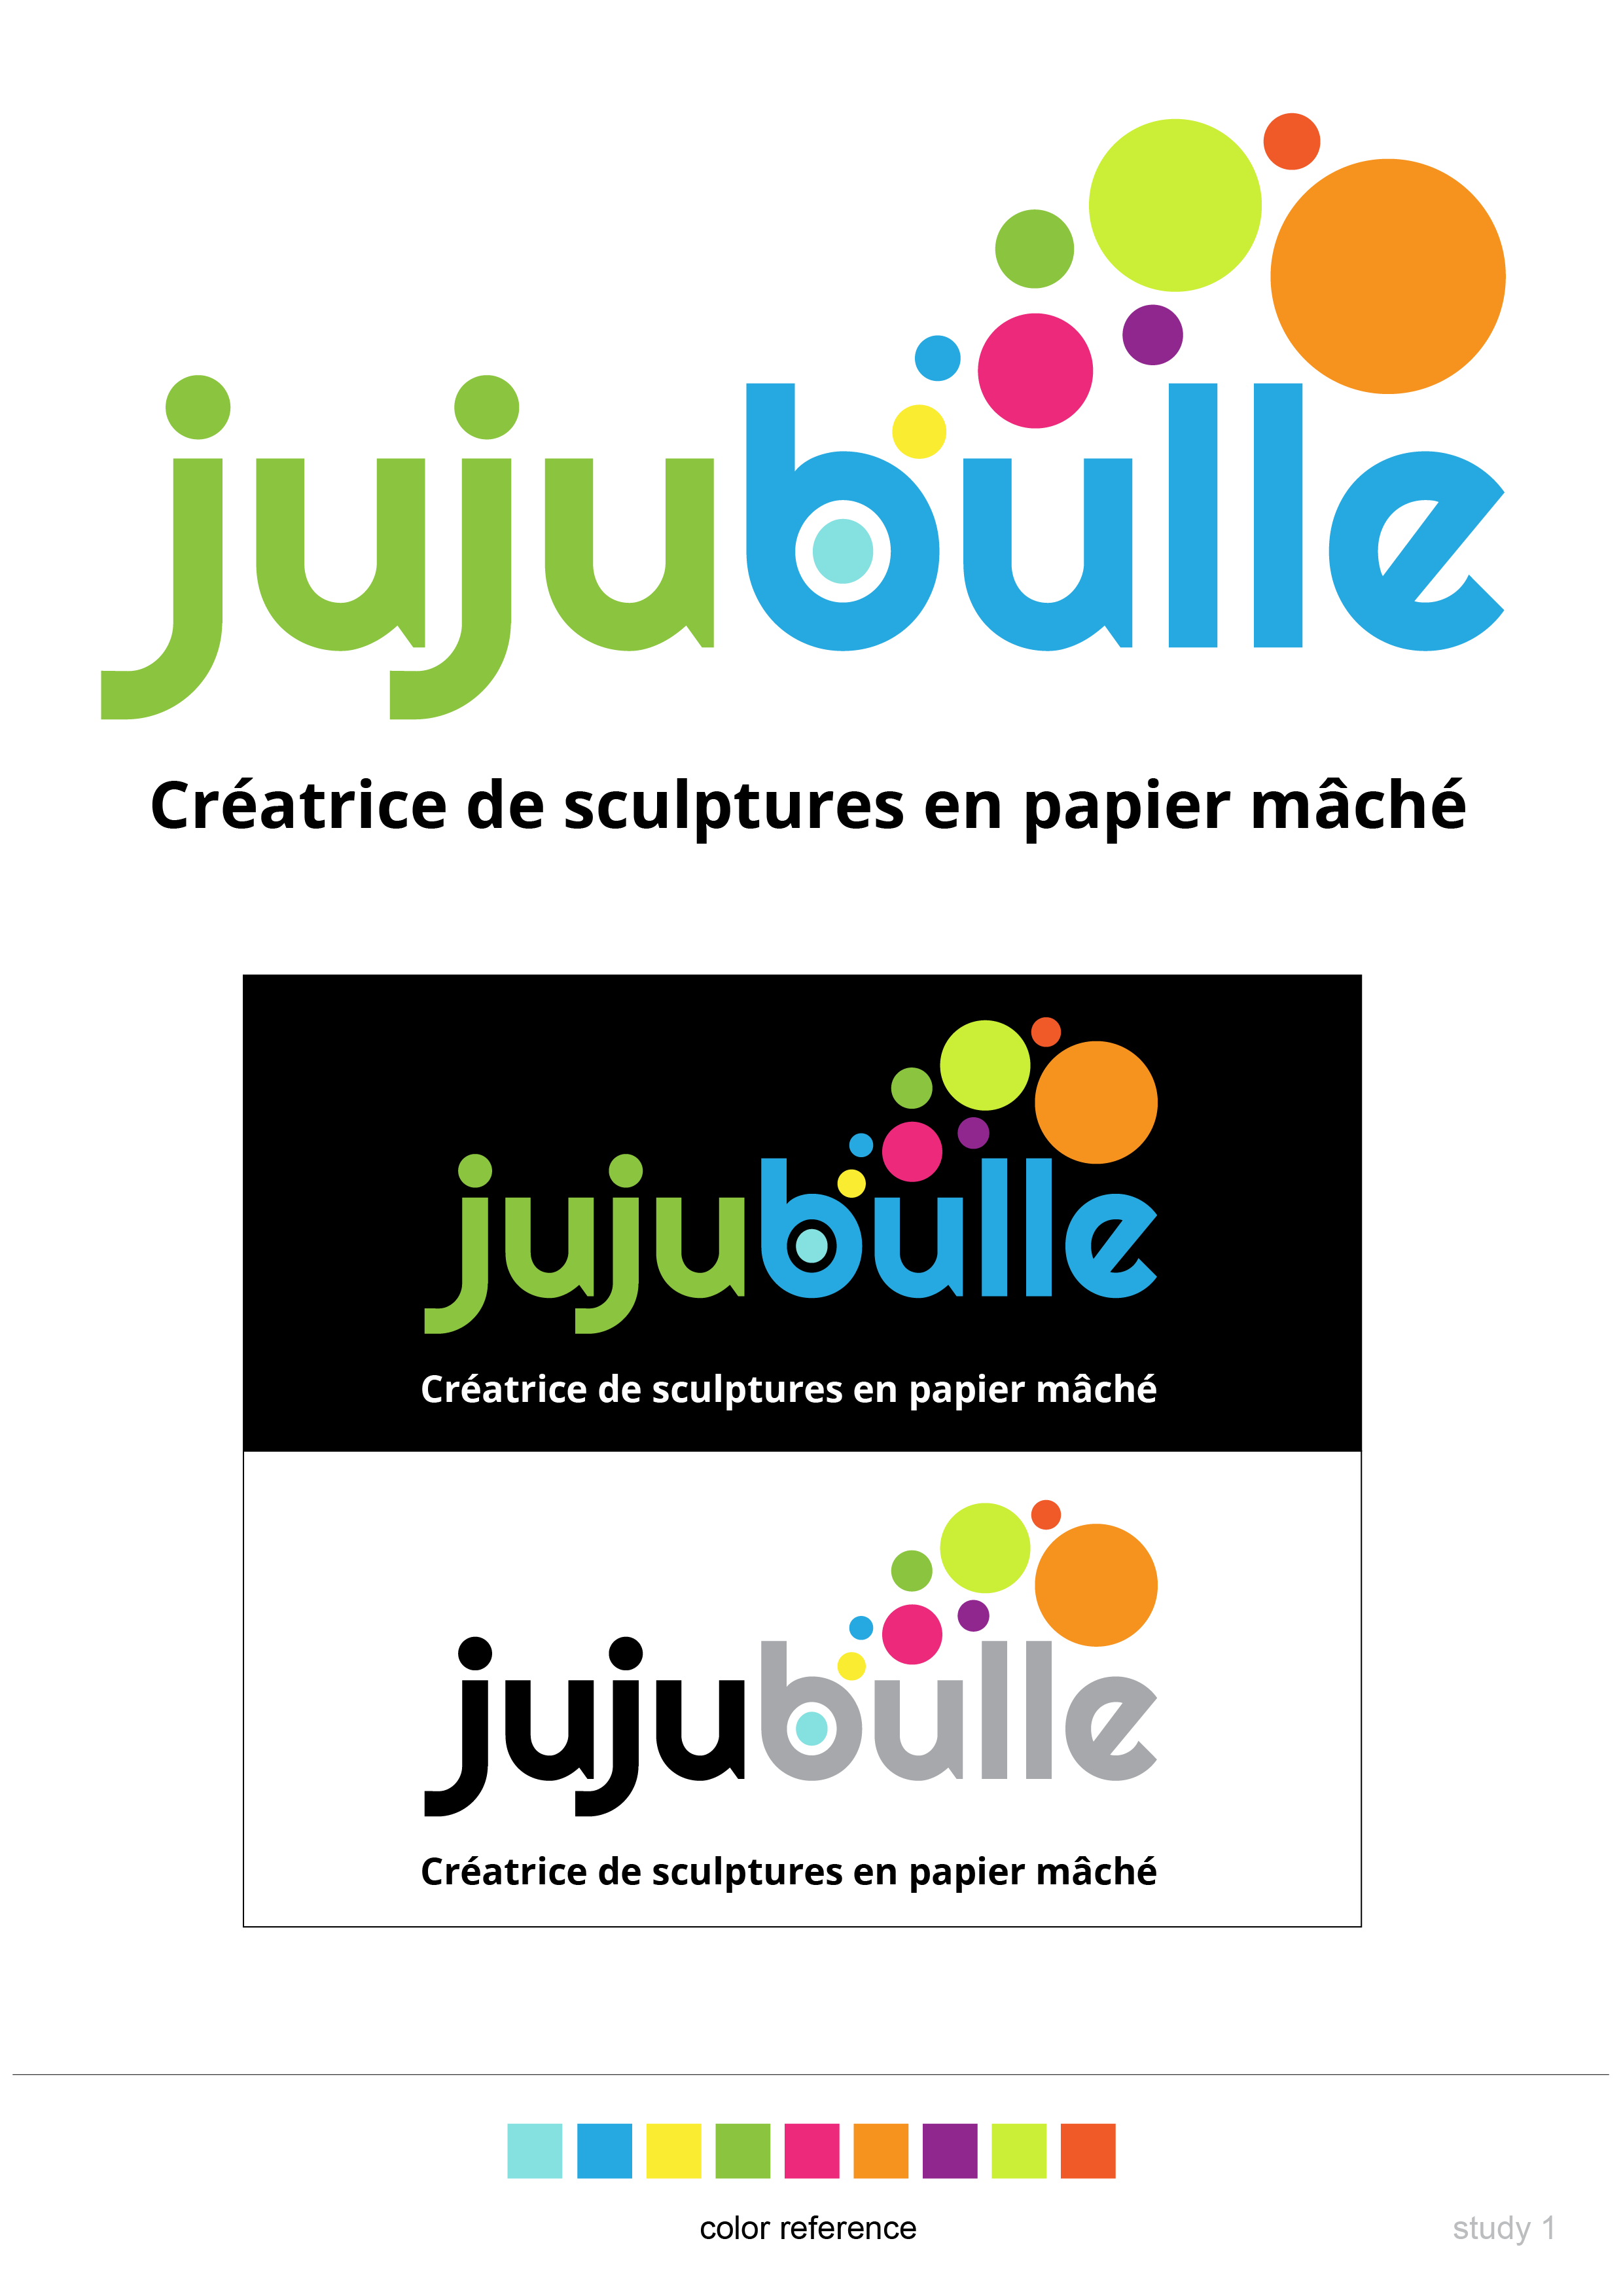 Jujubulle logo study1.png